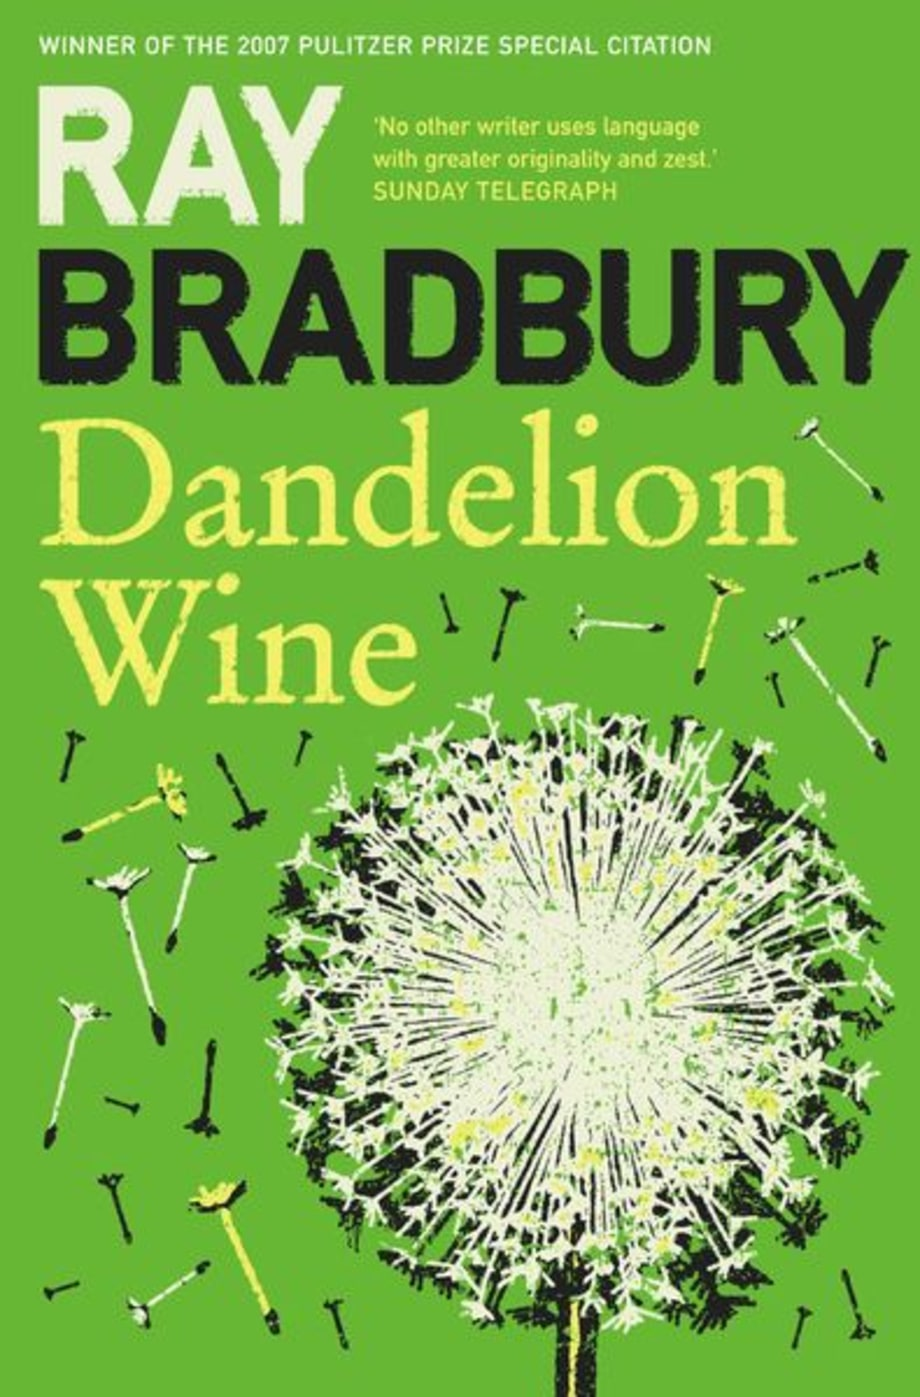 For the Guy Who Misses the Good Ol' Days: Dandelion Wine by Ray Bradbury